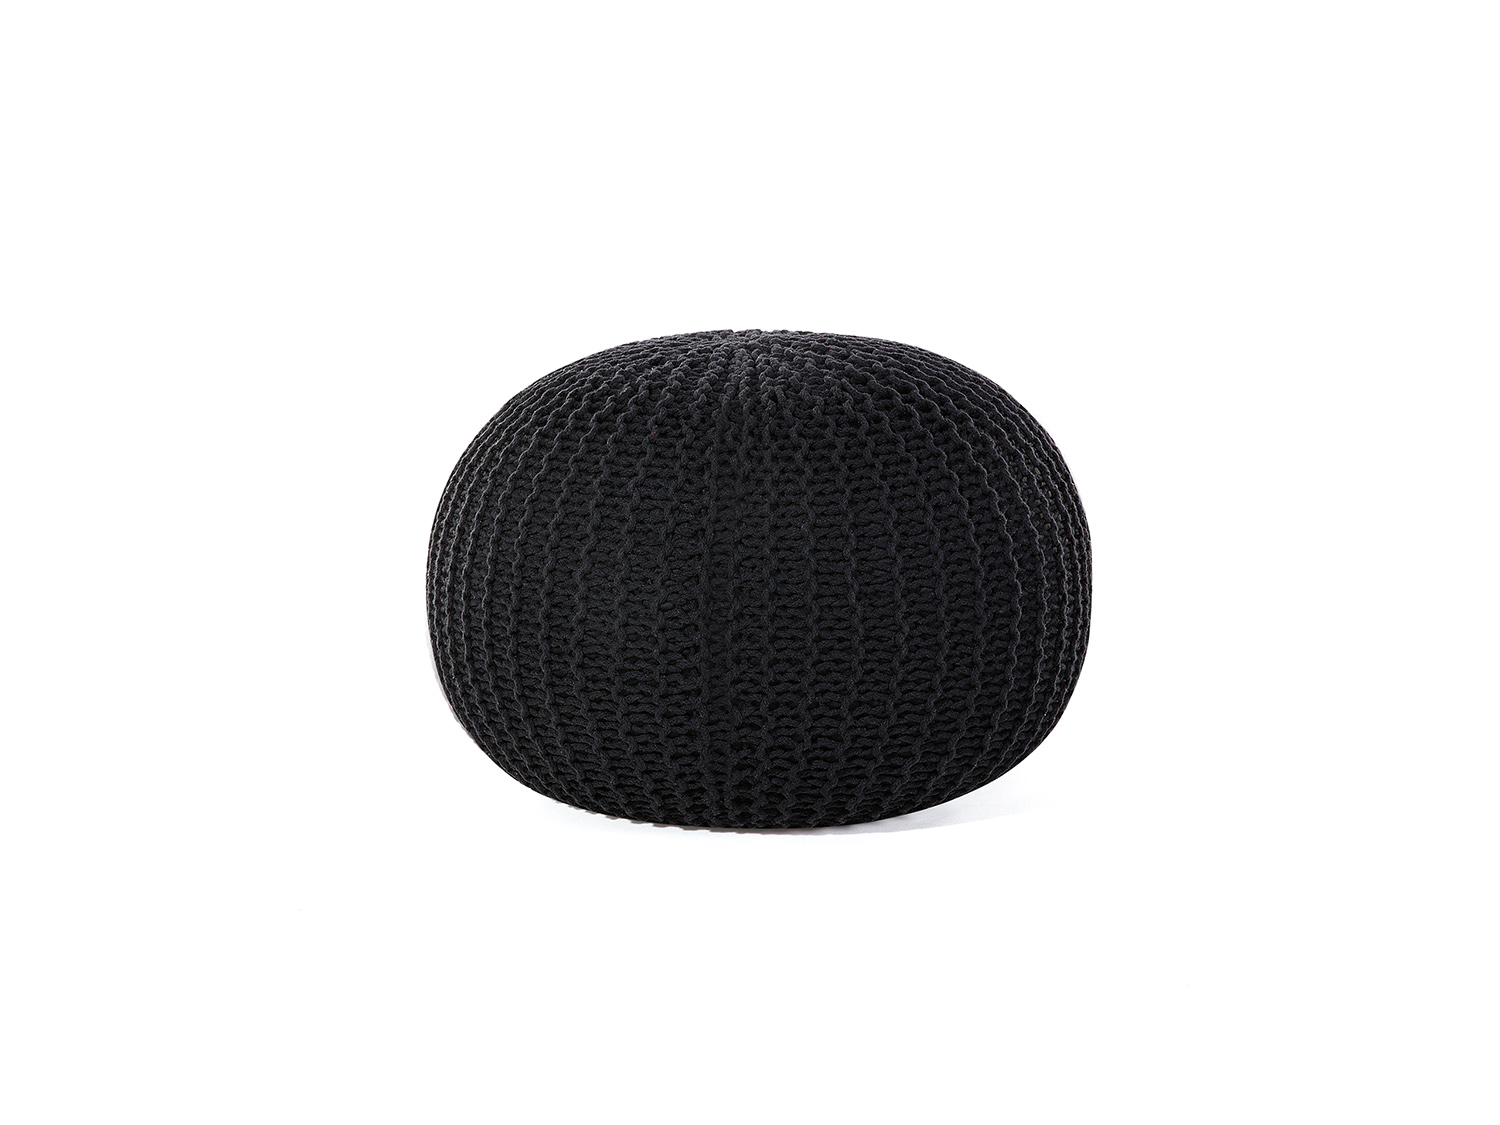 pouf boule 50 cm en coton noir pouf rond noir coton tricot repose pied ebay. Black Bedroom Furniture Sets. Home Design Ideas